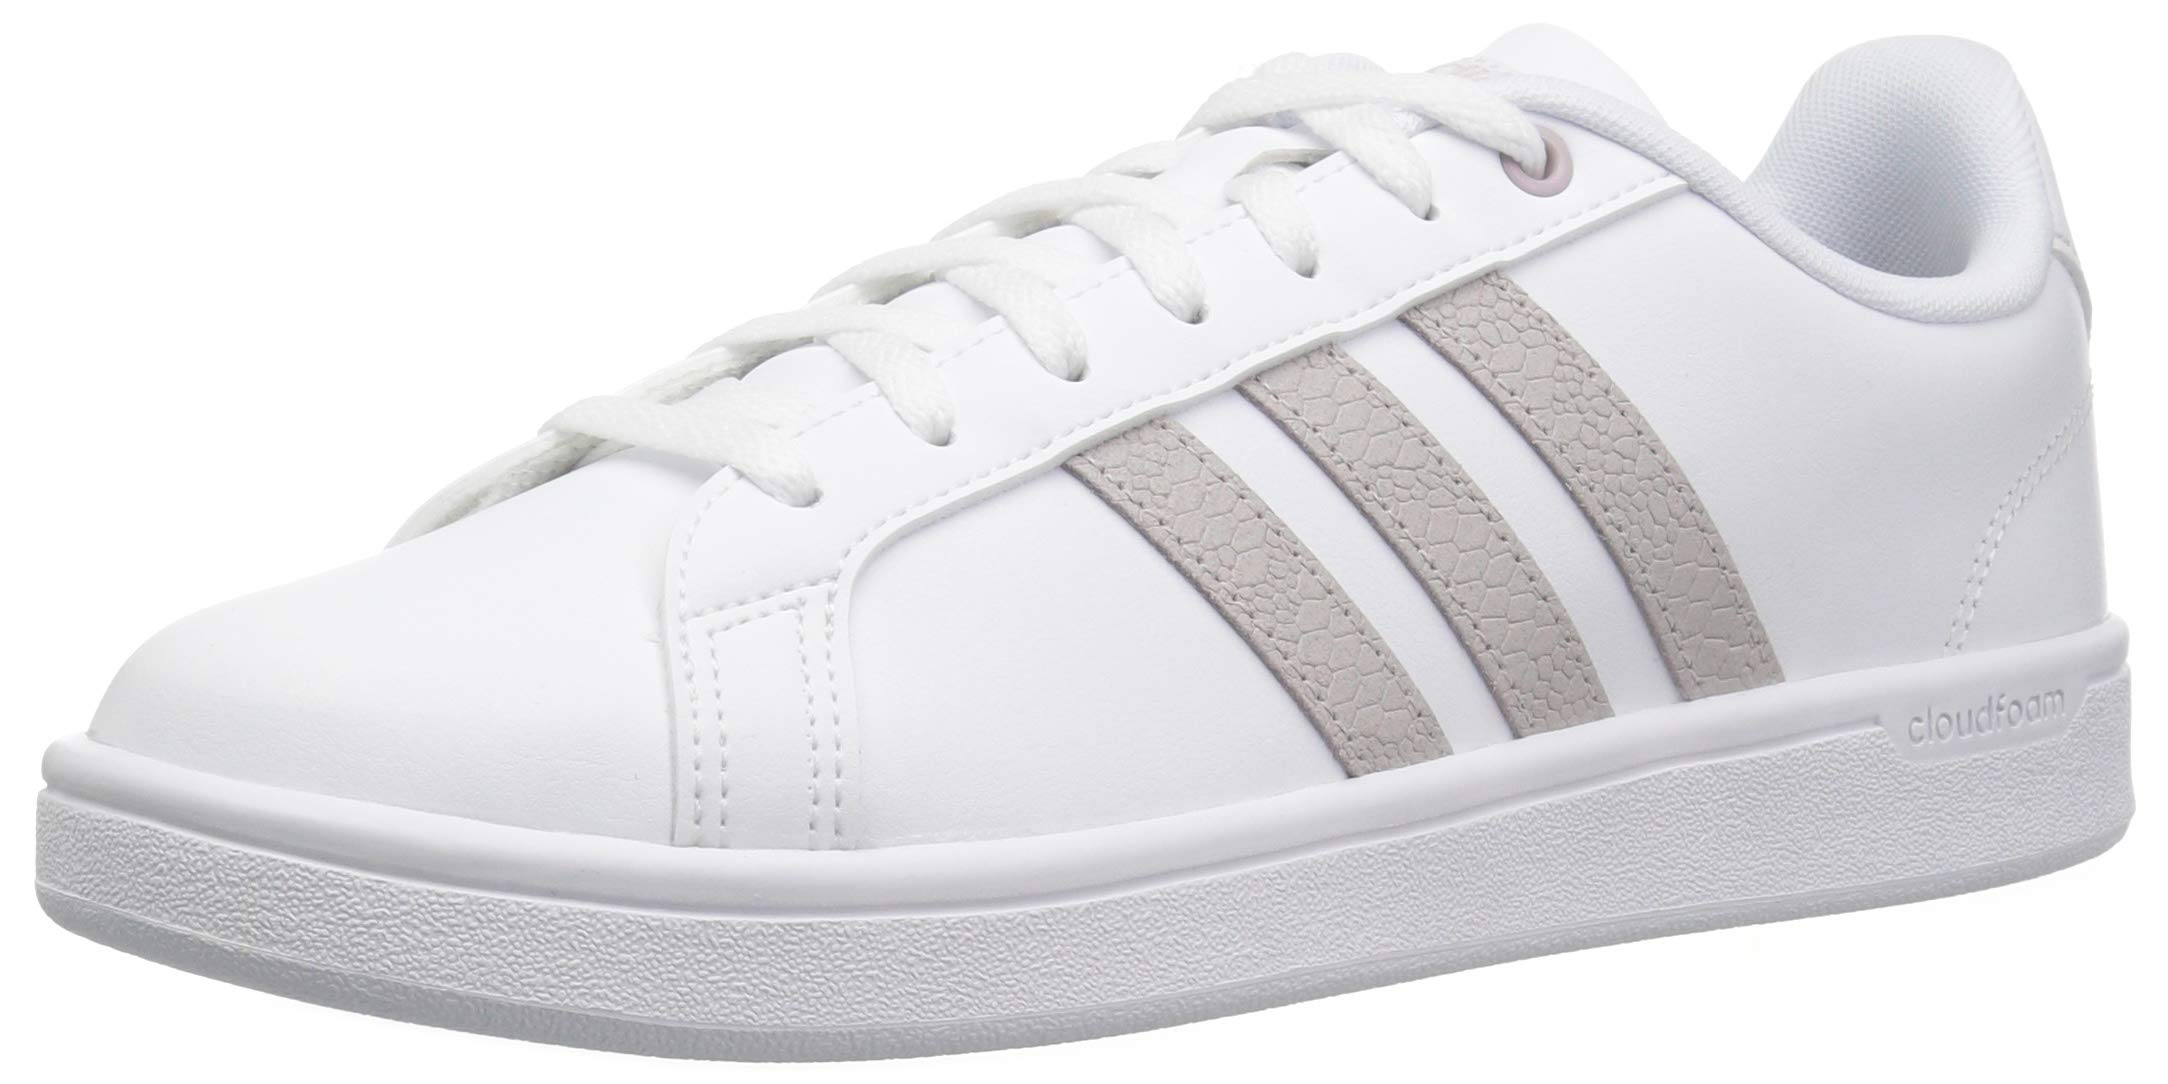 adidas Women's Cf Advantage Sneaker, White/ice Purple/Light Granite, 5.5 M US